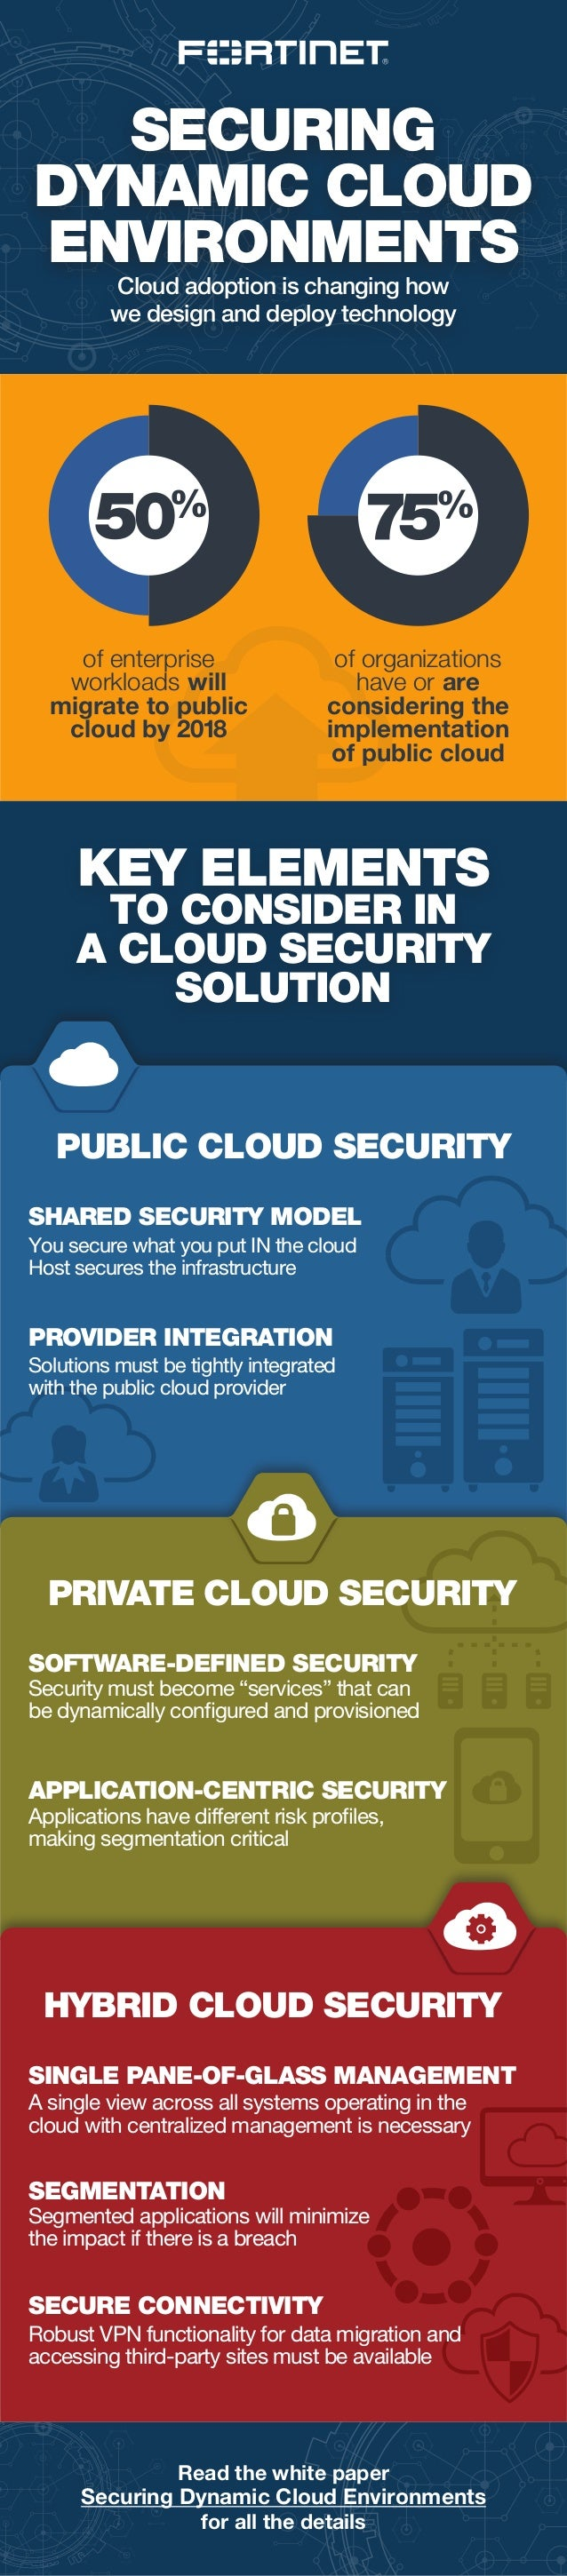 SECURING DYNAMIC CLOUD ENVIRONMENTS Cloud adoption is changing how we design and deploy technology Read the white paper Se...